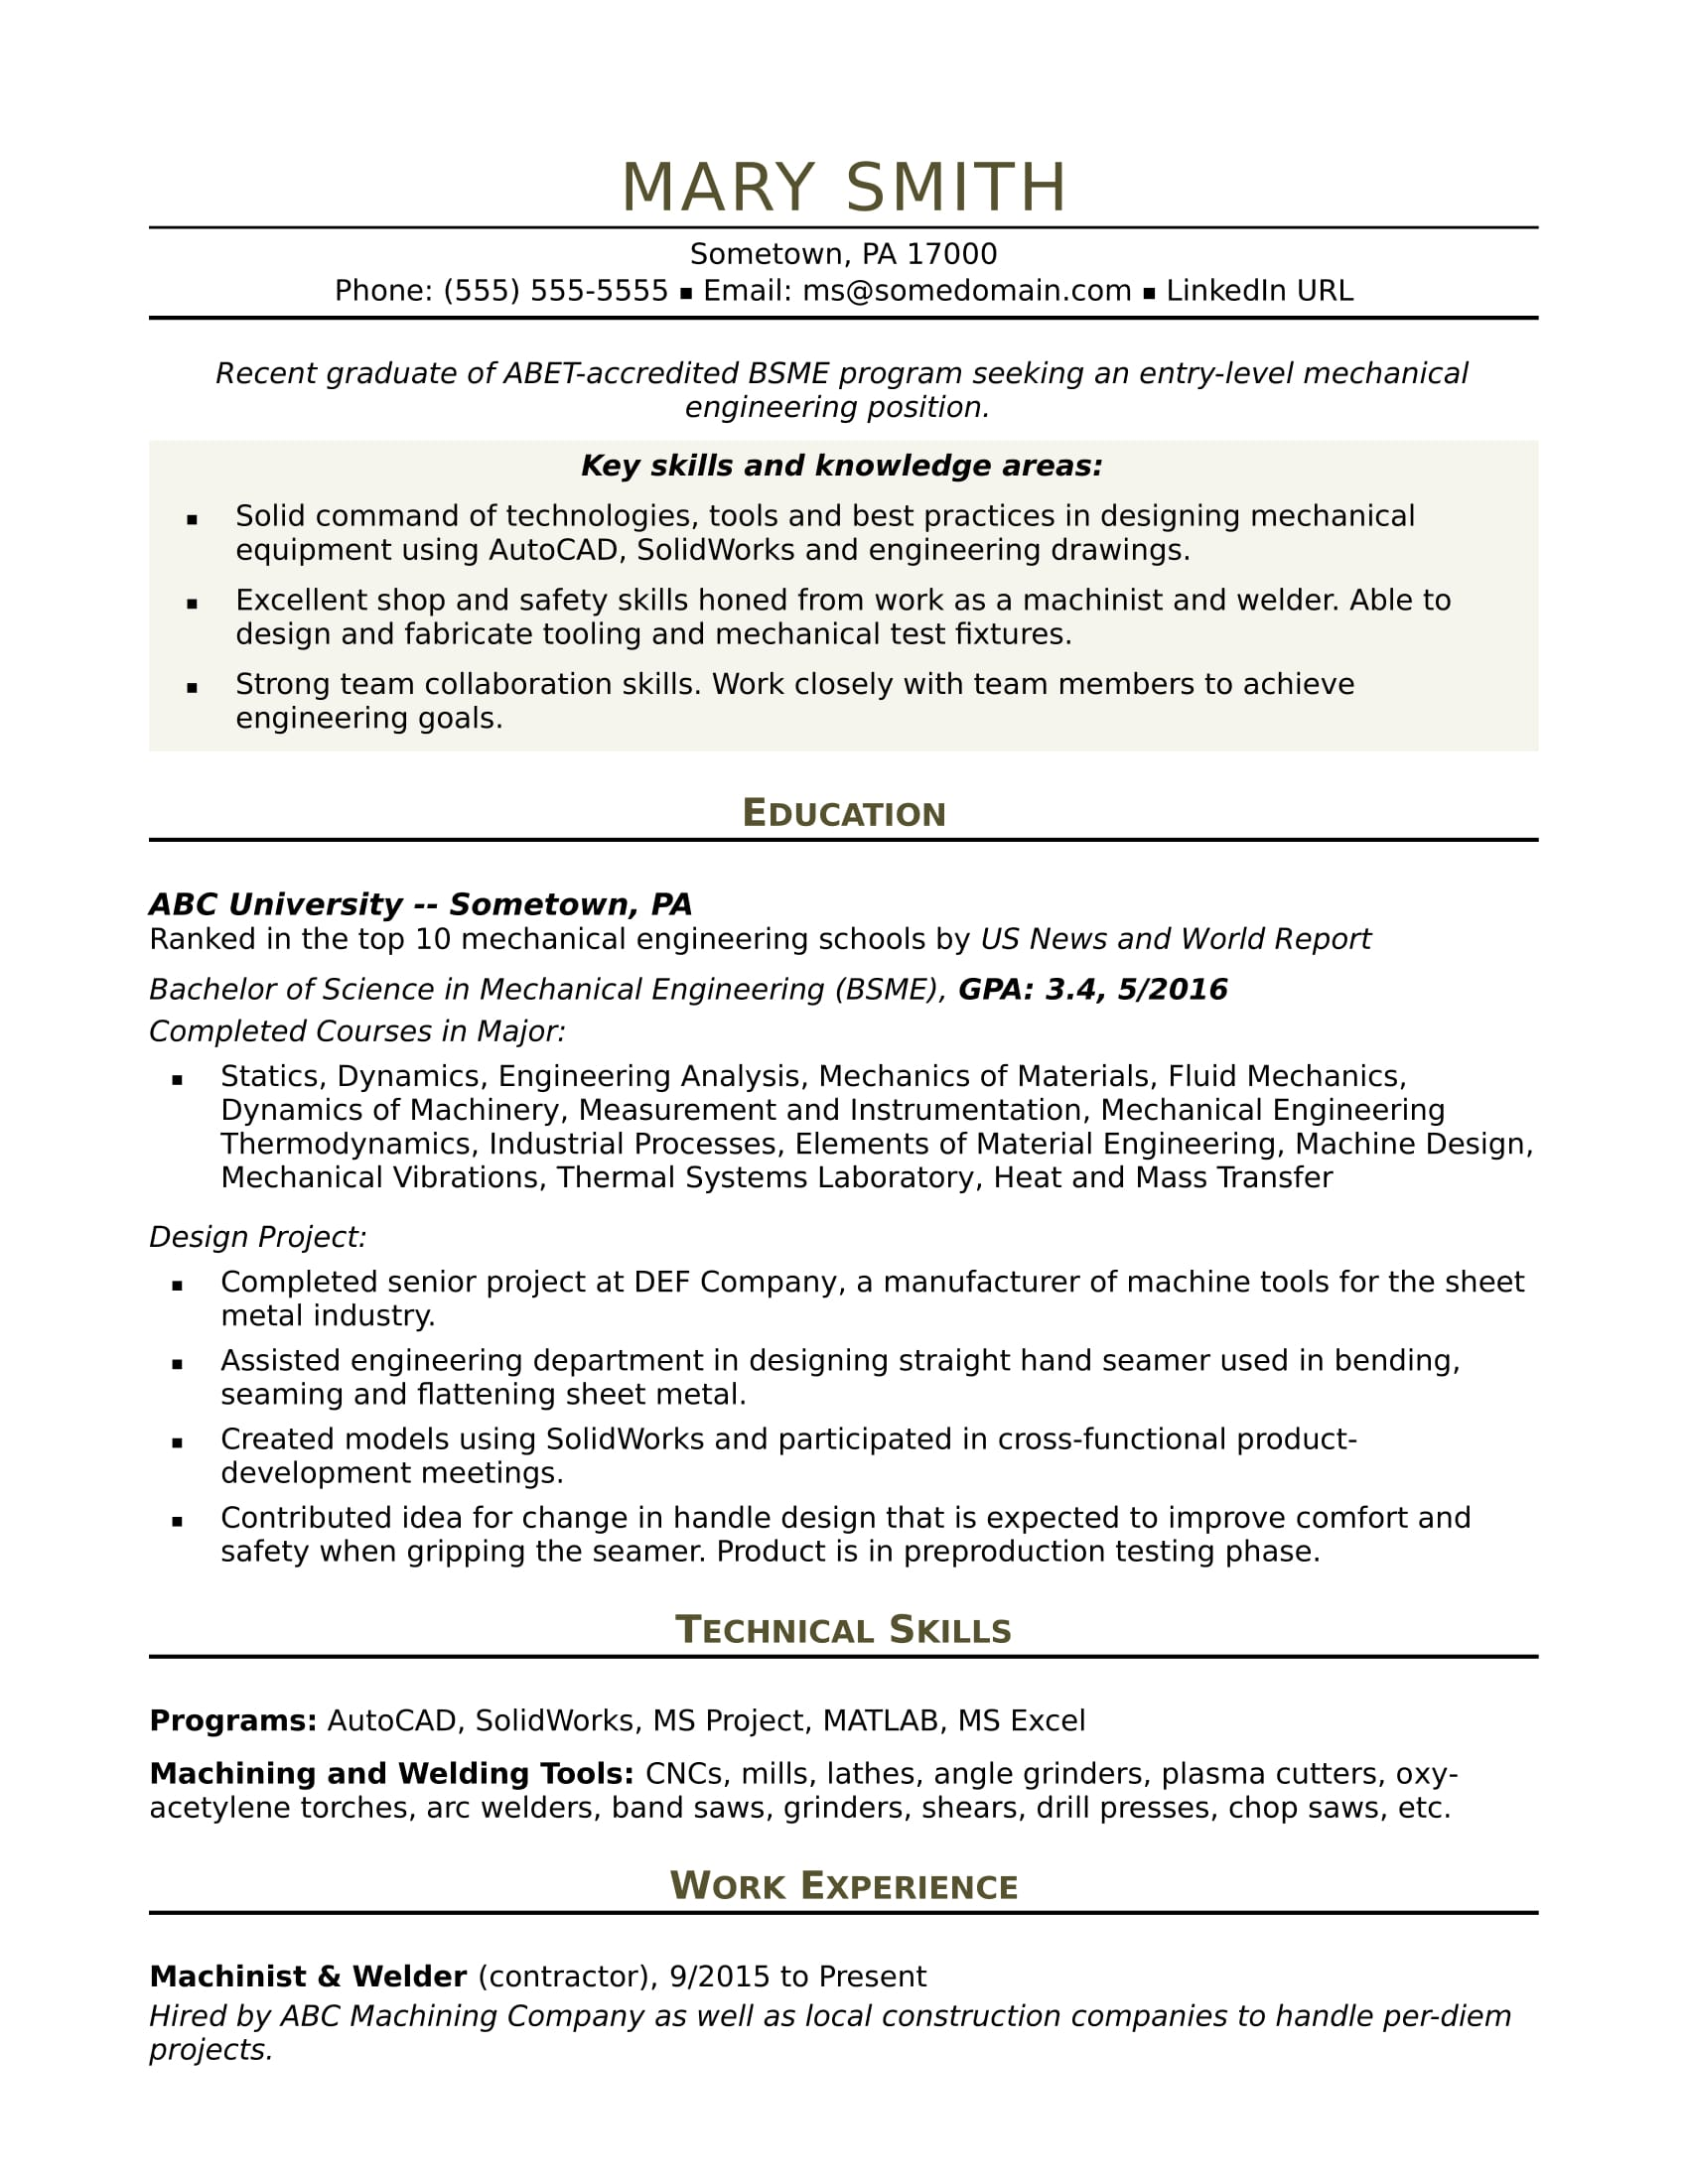 Sample Resume For An Entry Level Mechanical Engineer  Work Skills Resume